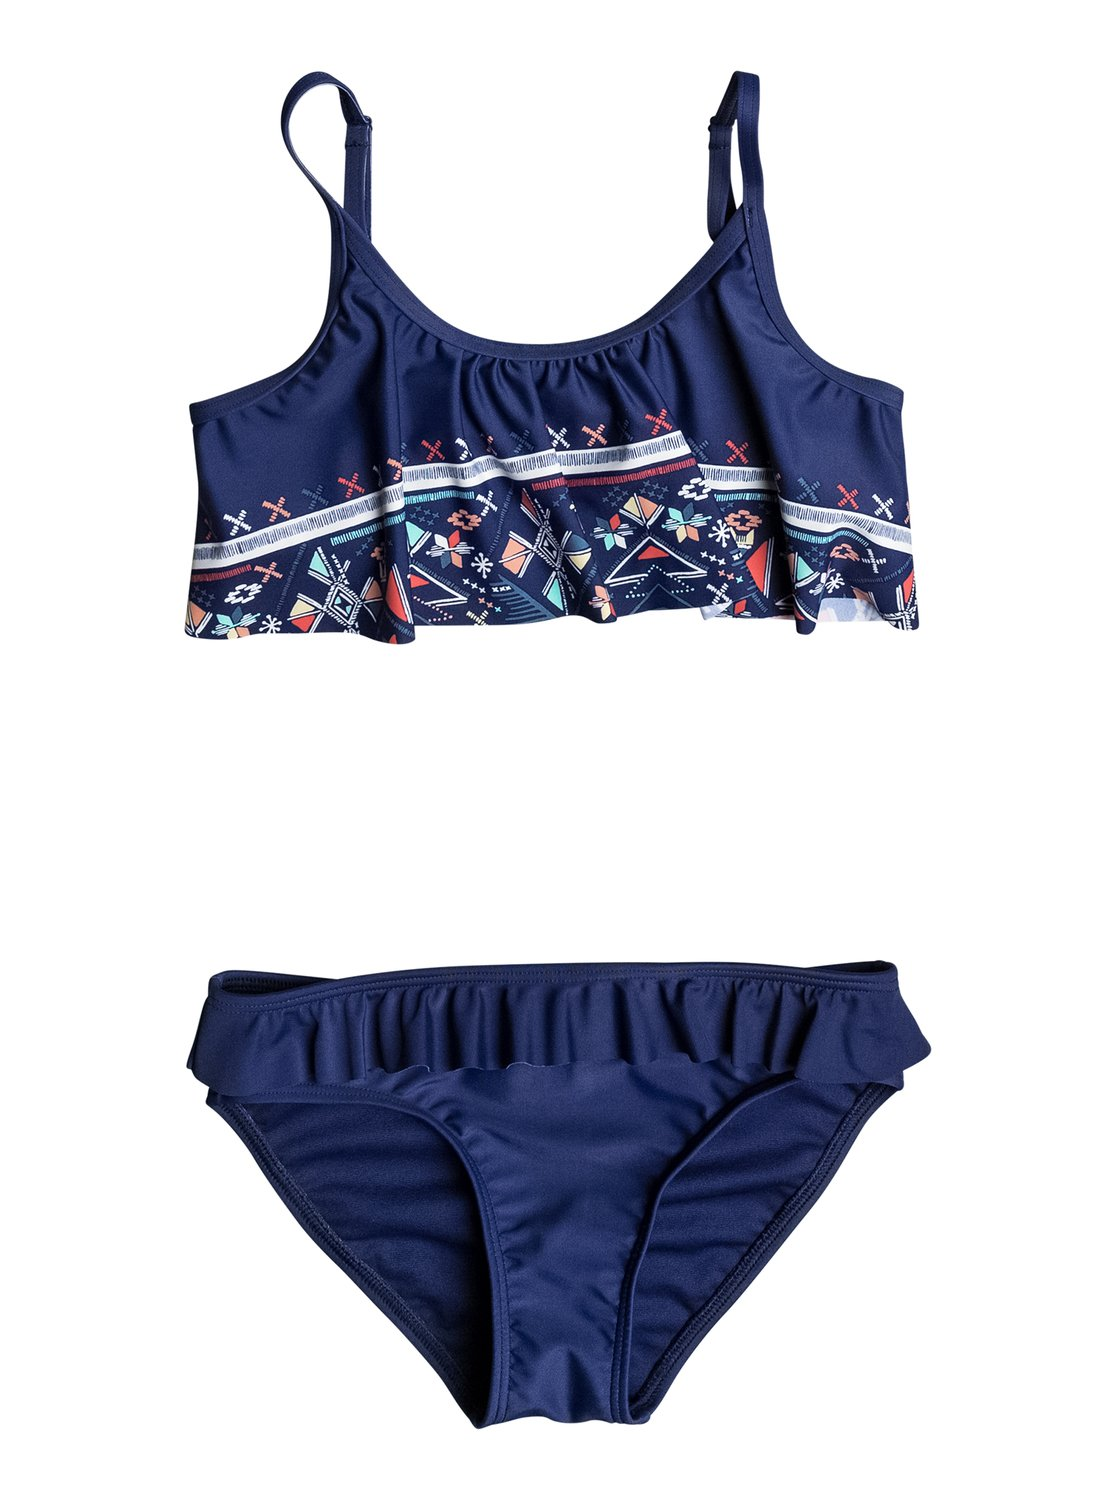 Little Pretty - Ensemble de bikini à volant pour Fille - Roxy